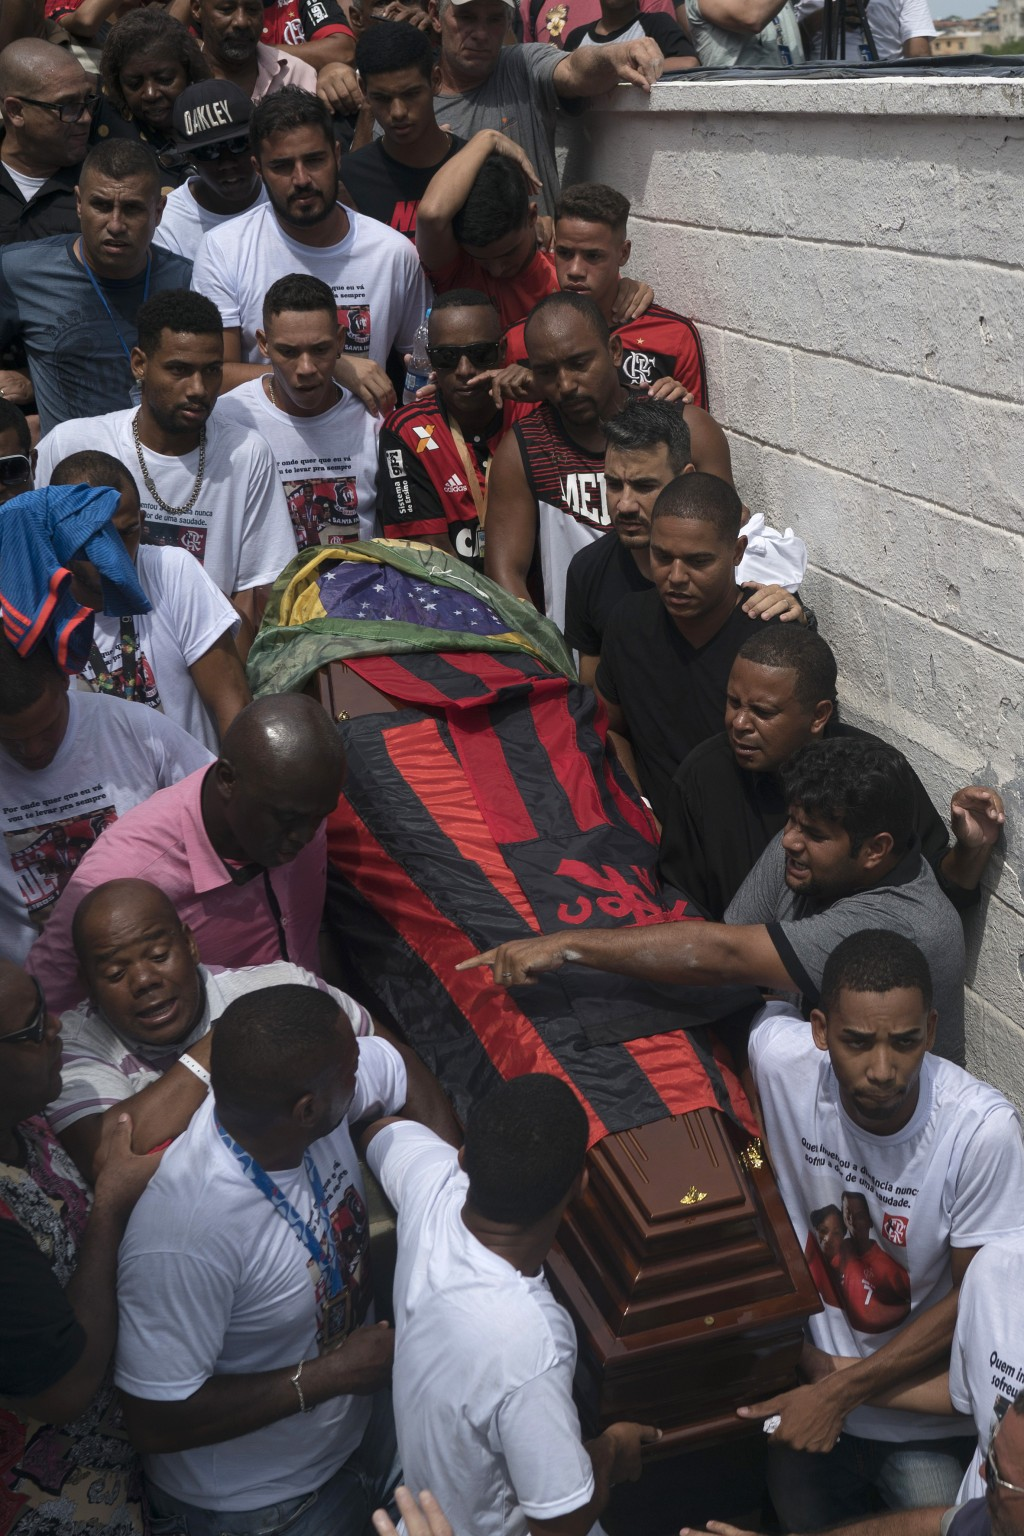 Friends and relatives carry the coffin that contain the remains of Samuel de Souza Rosa, one of the 10 young soccer players killed in a fire at the tr...